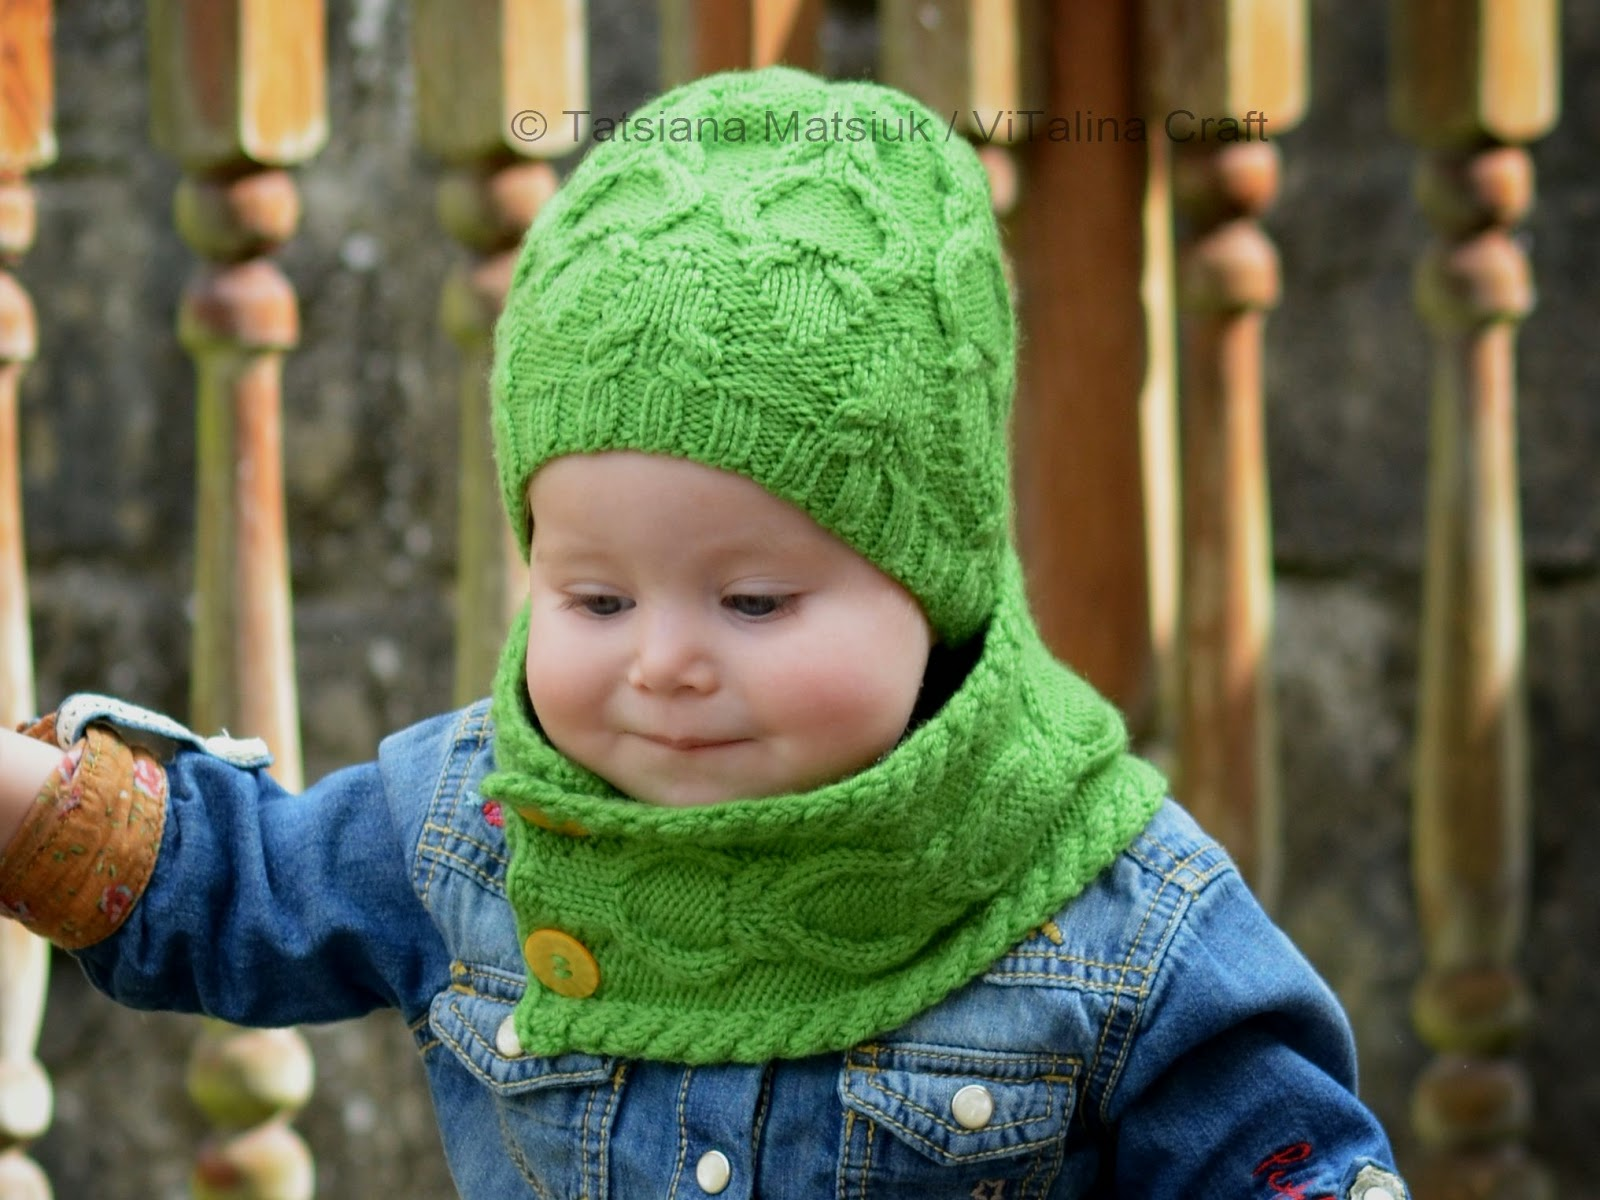 Rainforest Hat And Cowl Set Knitting Pattern Vitalina Craft